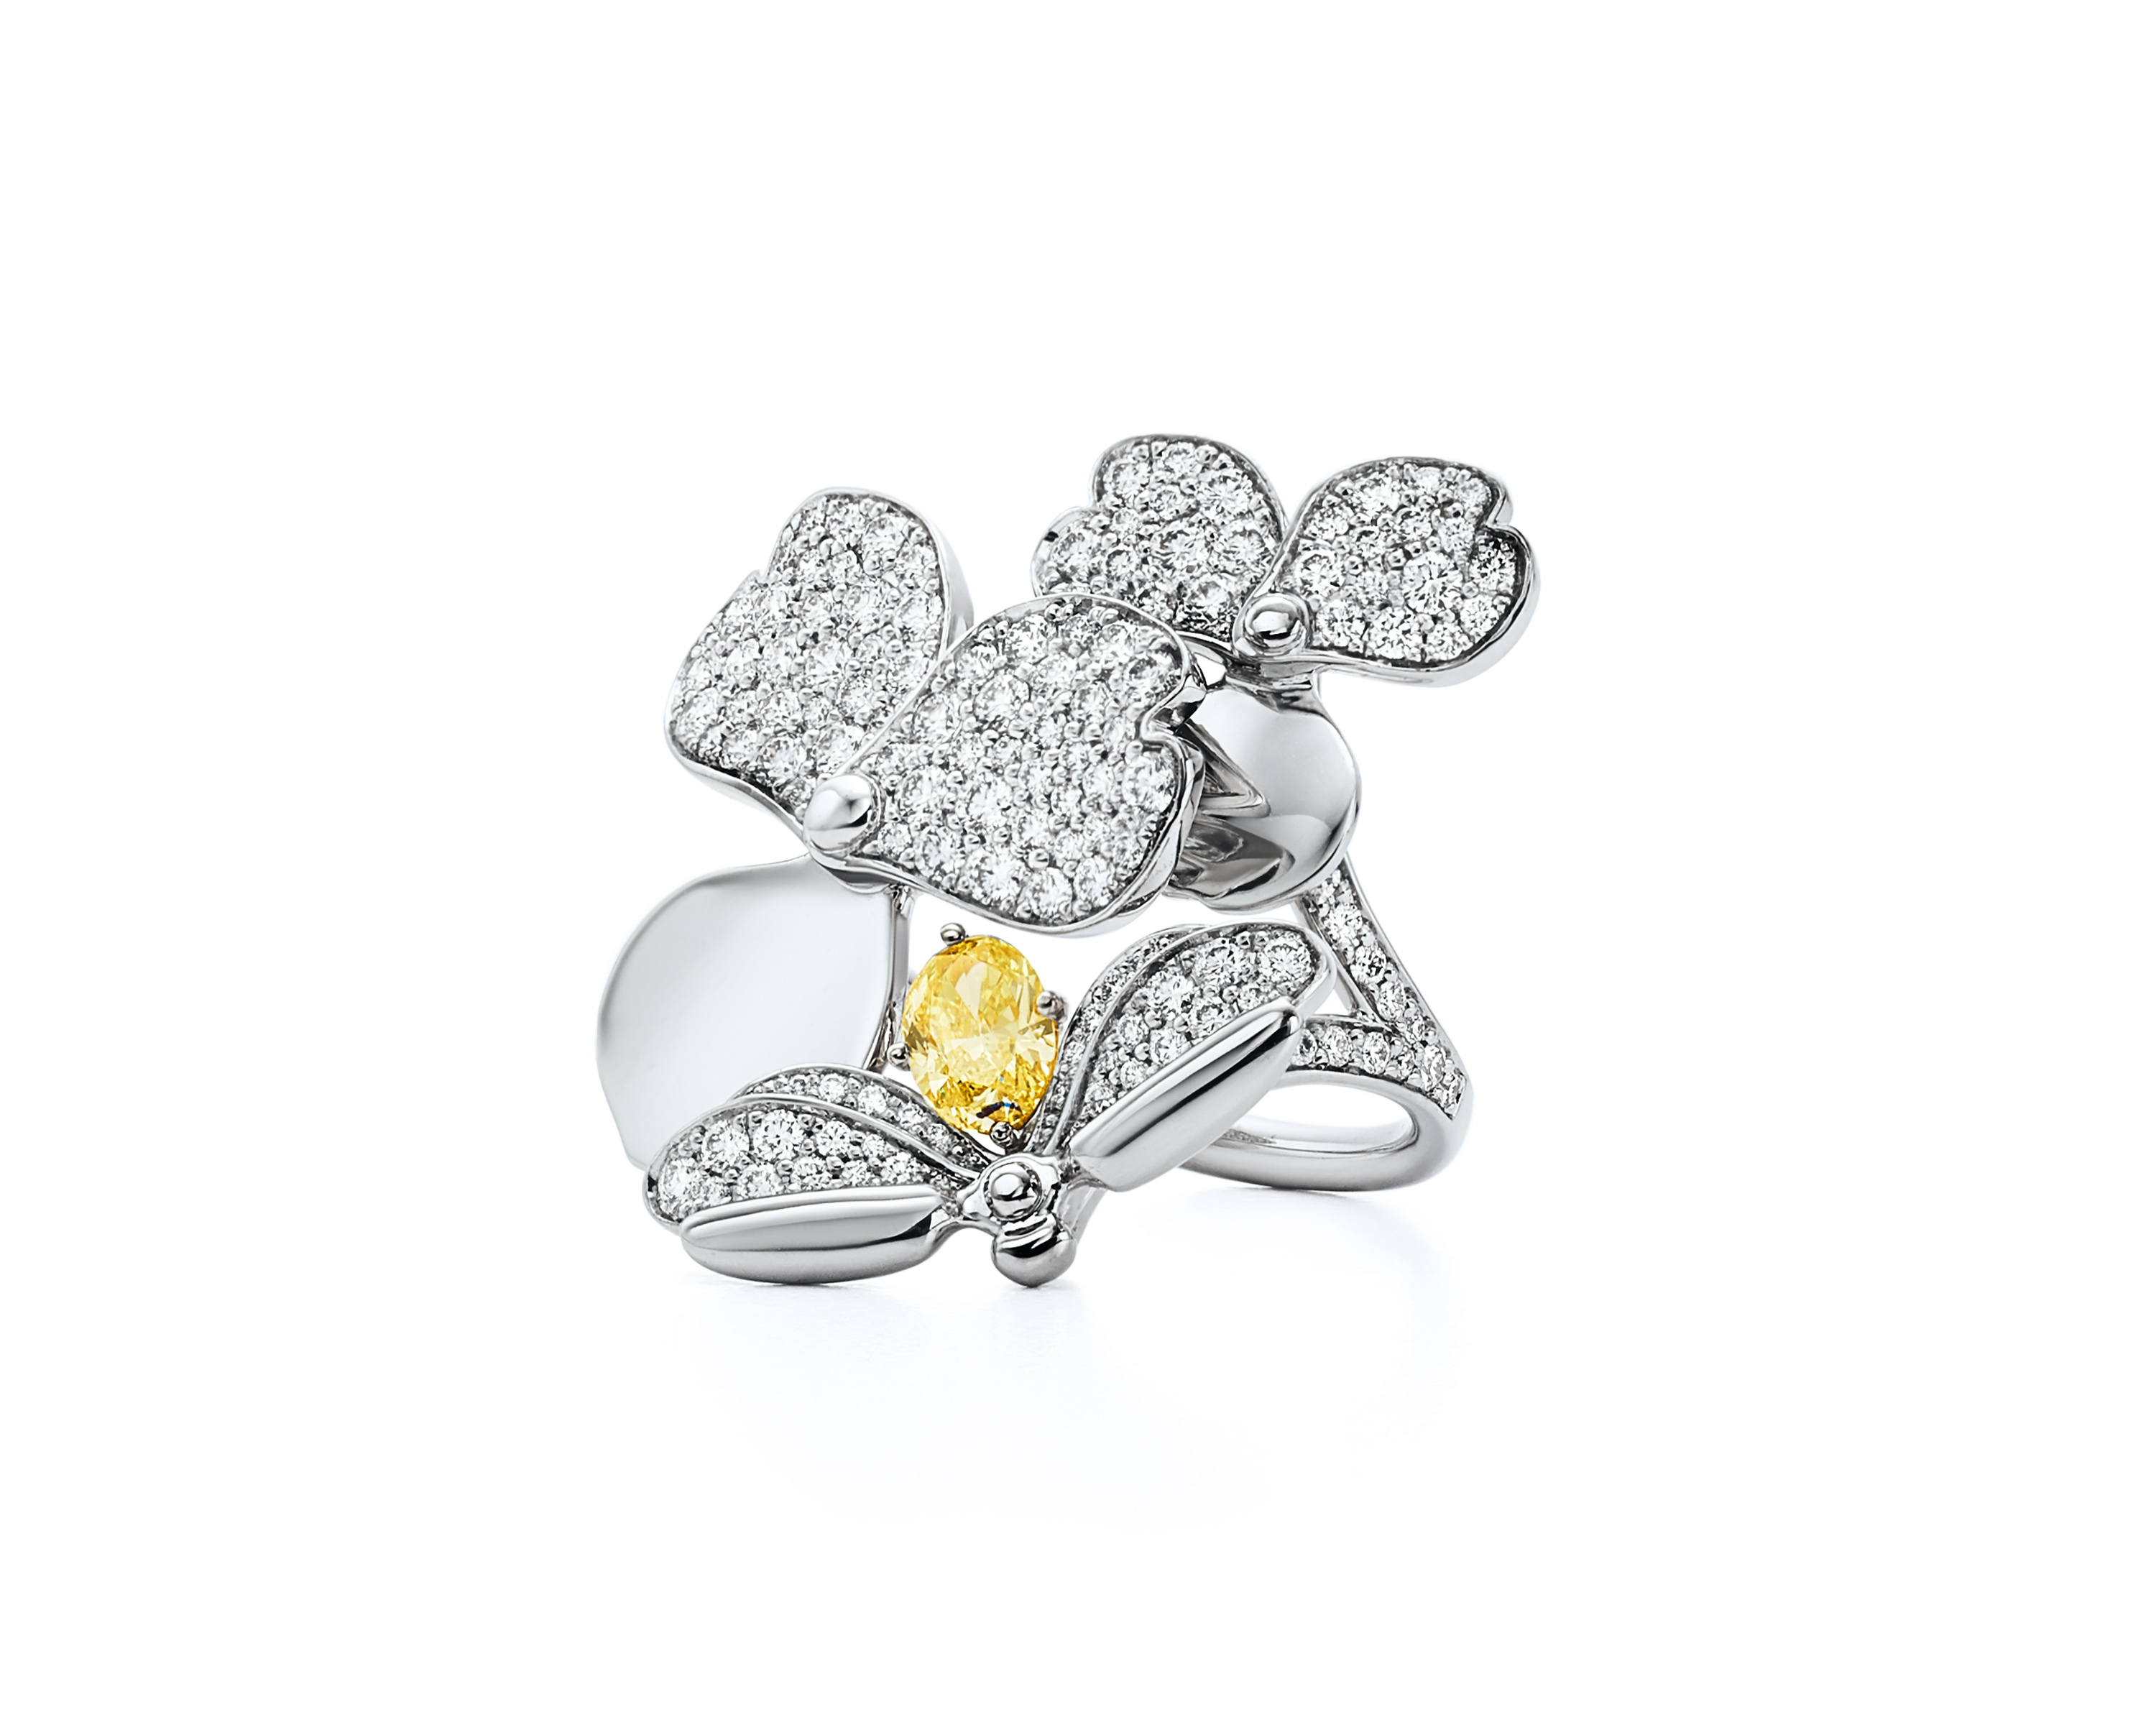 Tiffany Co Launches Flower Petal Inspired Collection Future Of